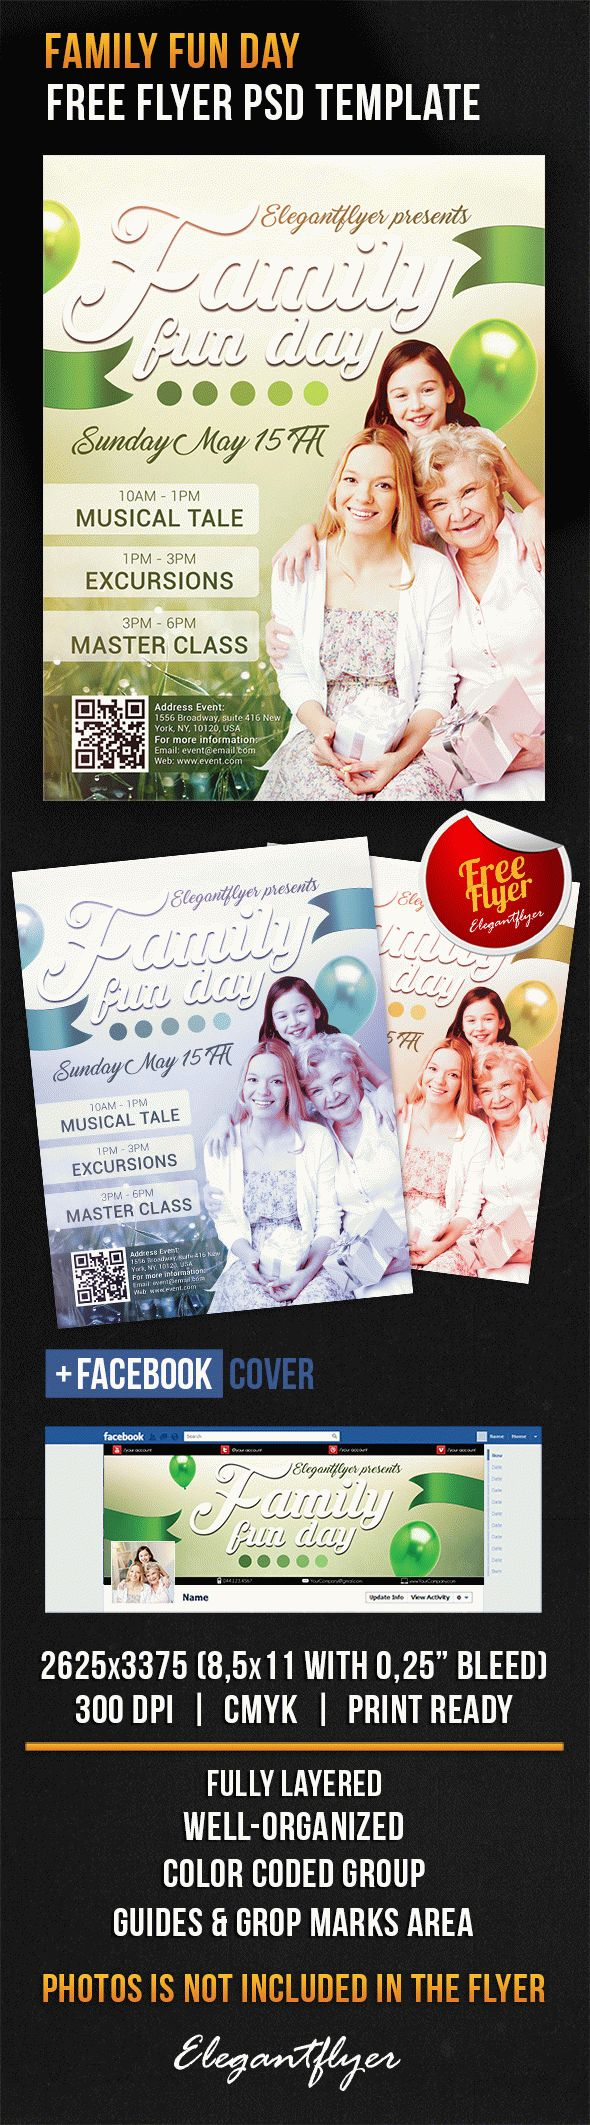 Family Fun Day – Free Flyer PSD Template + Facebook Cover